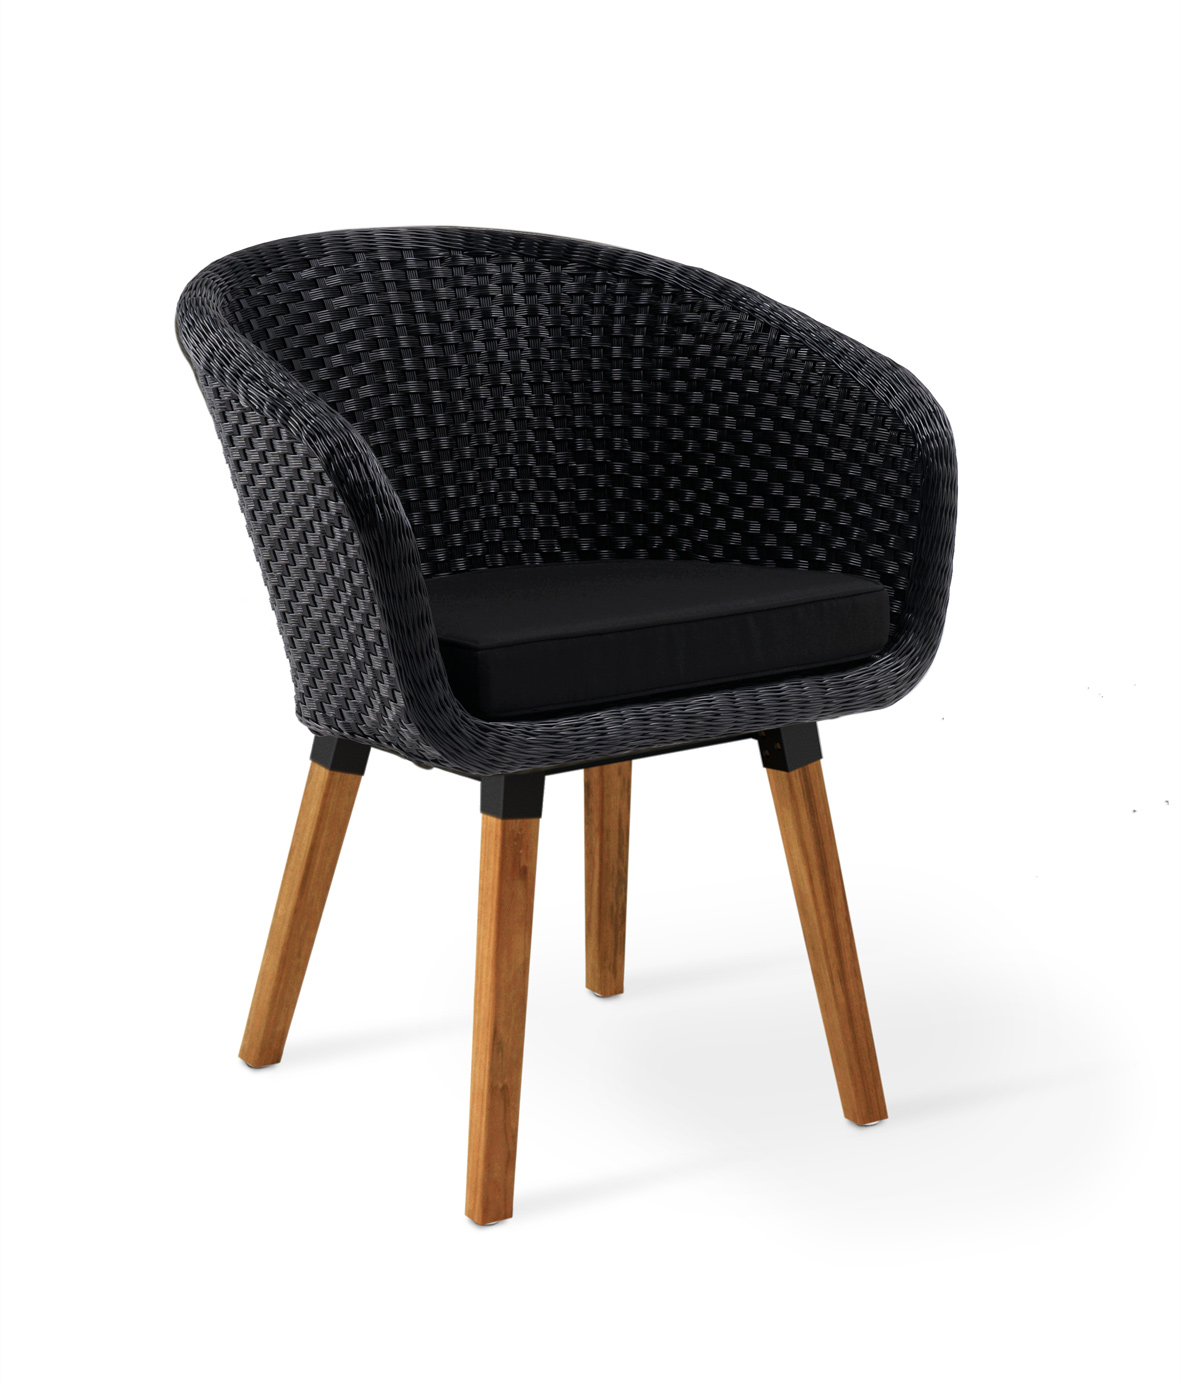 Shell chair with teak frame